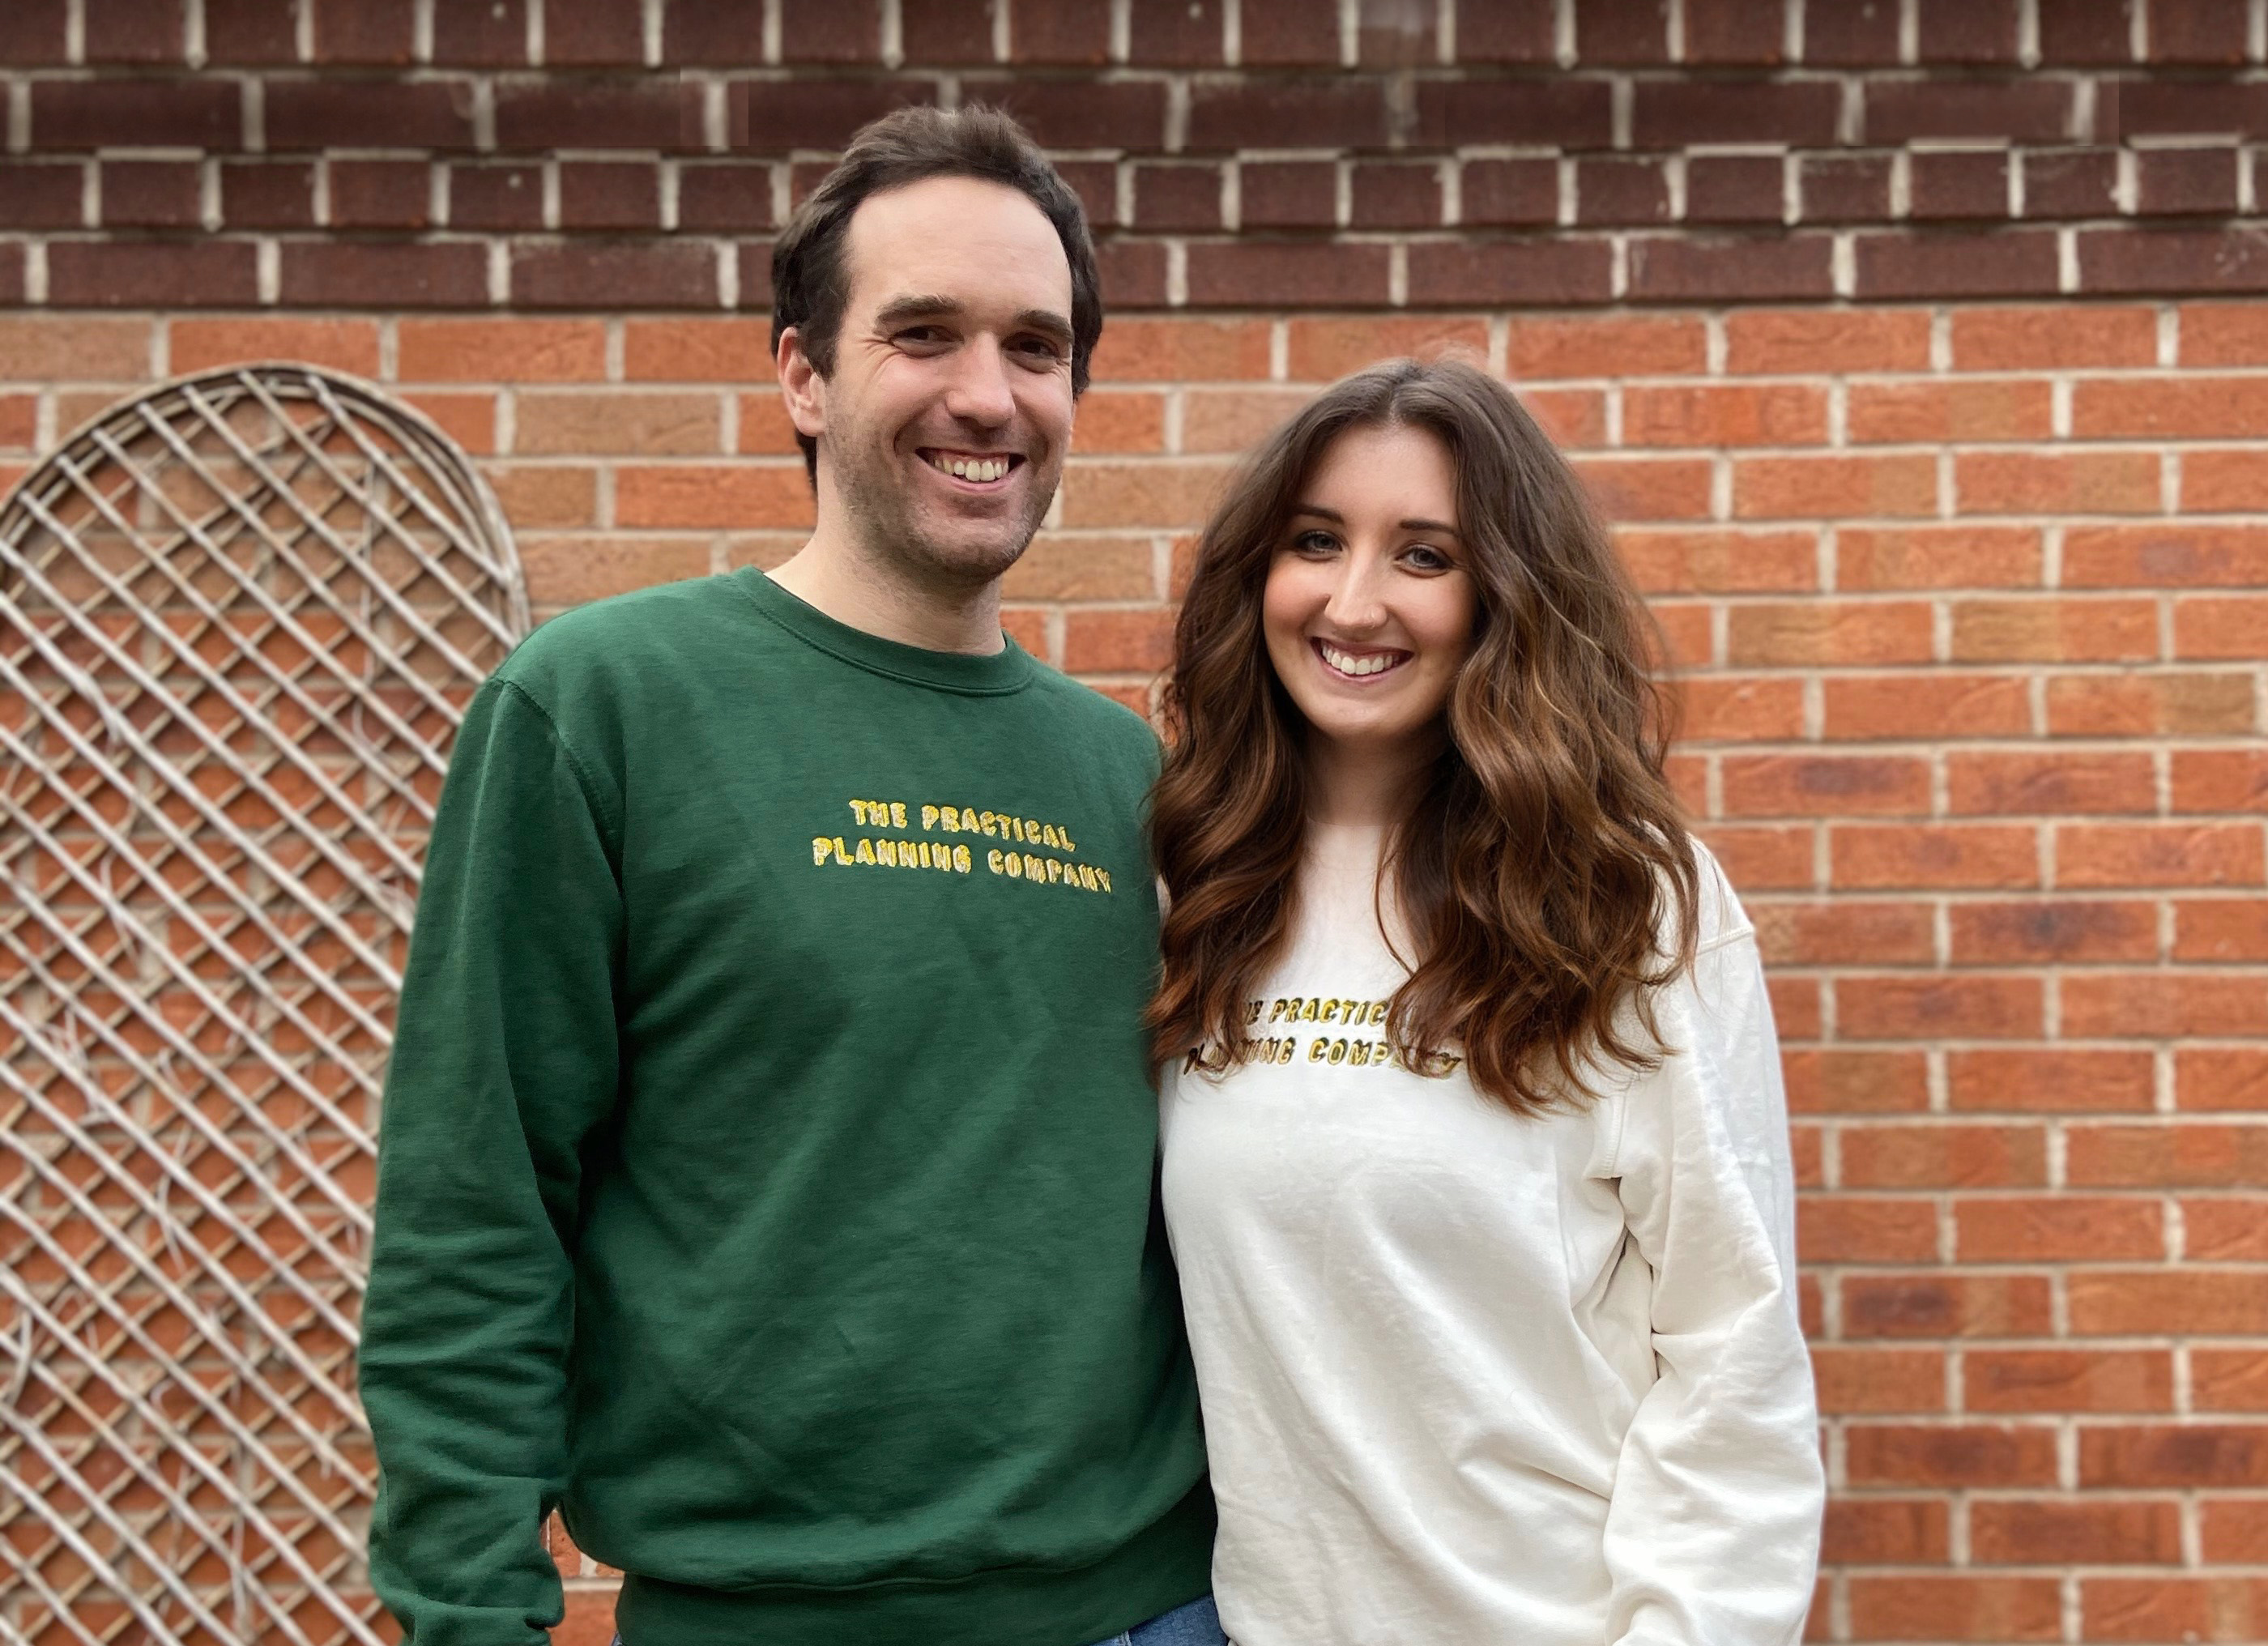 Nottingham couple celebrates as their architectural firm marks its 1st birthday